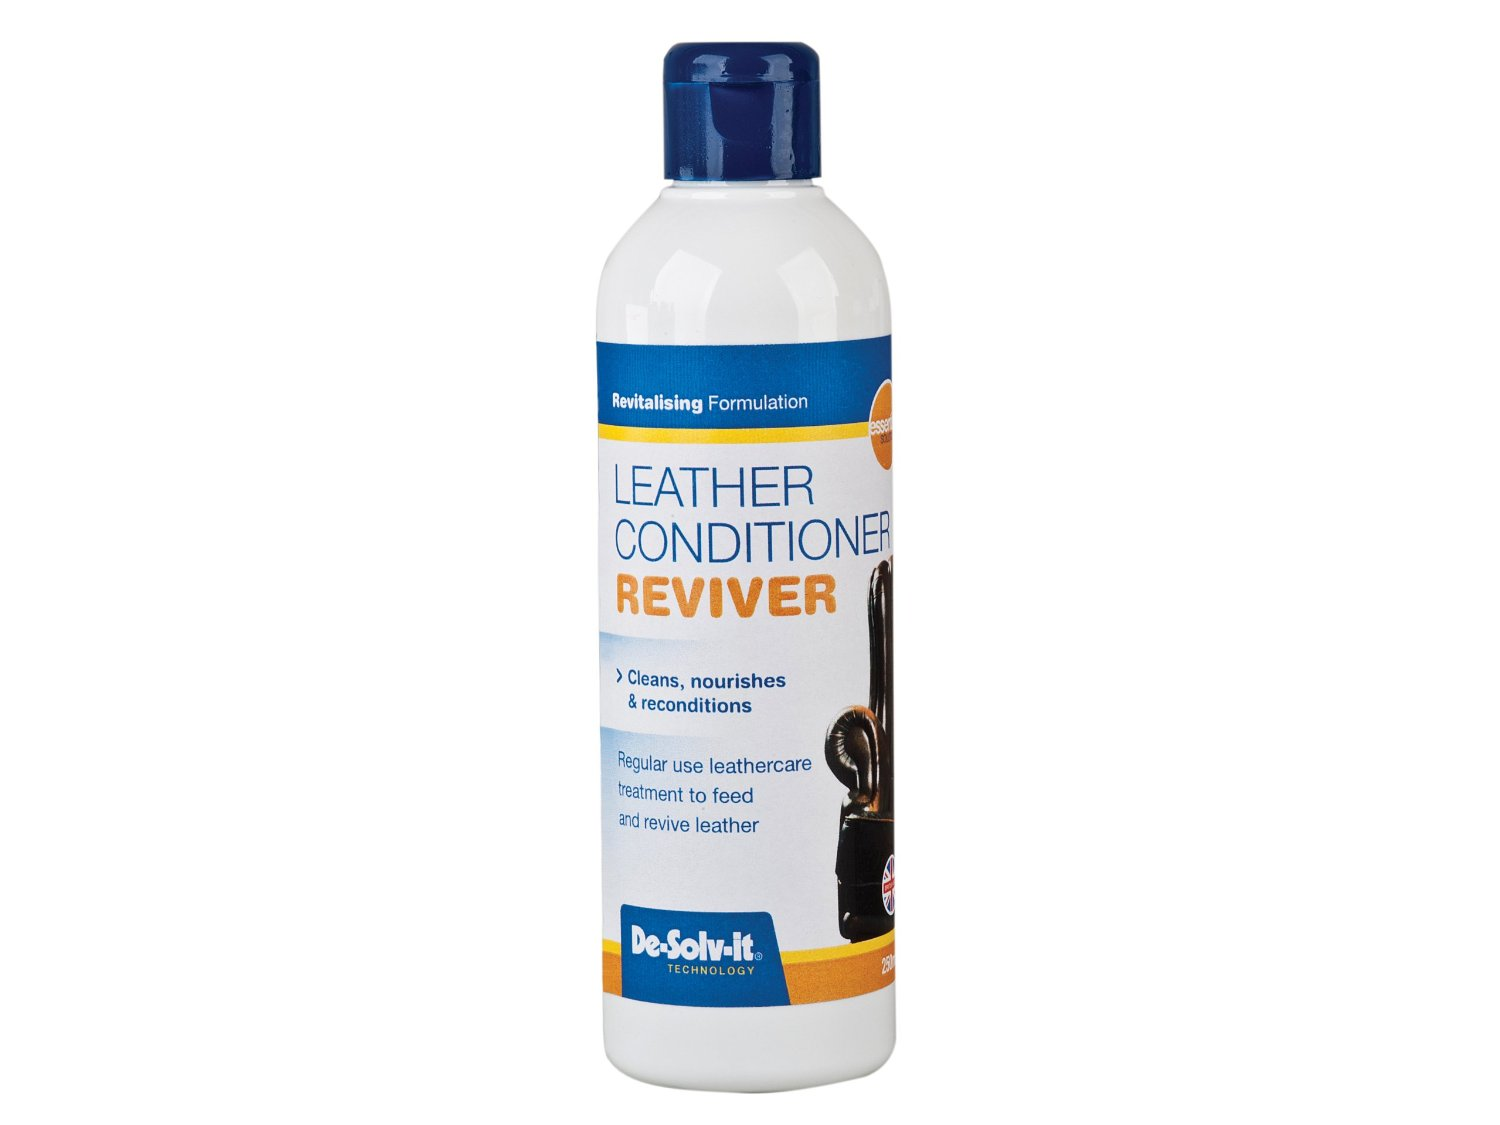 De-Solv-it Leather conditioner reviver